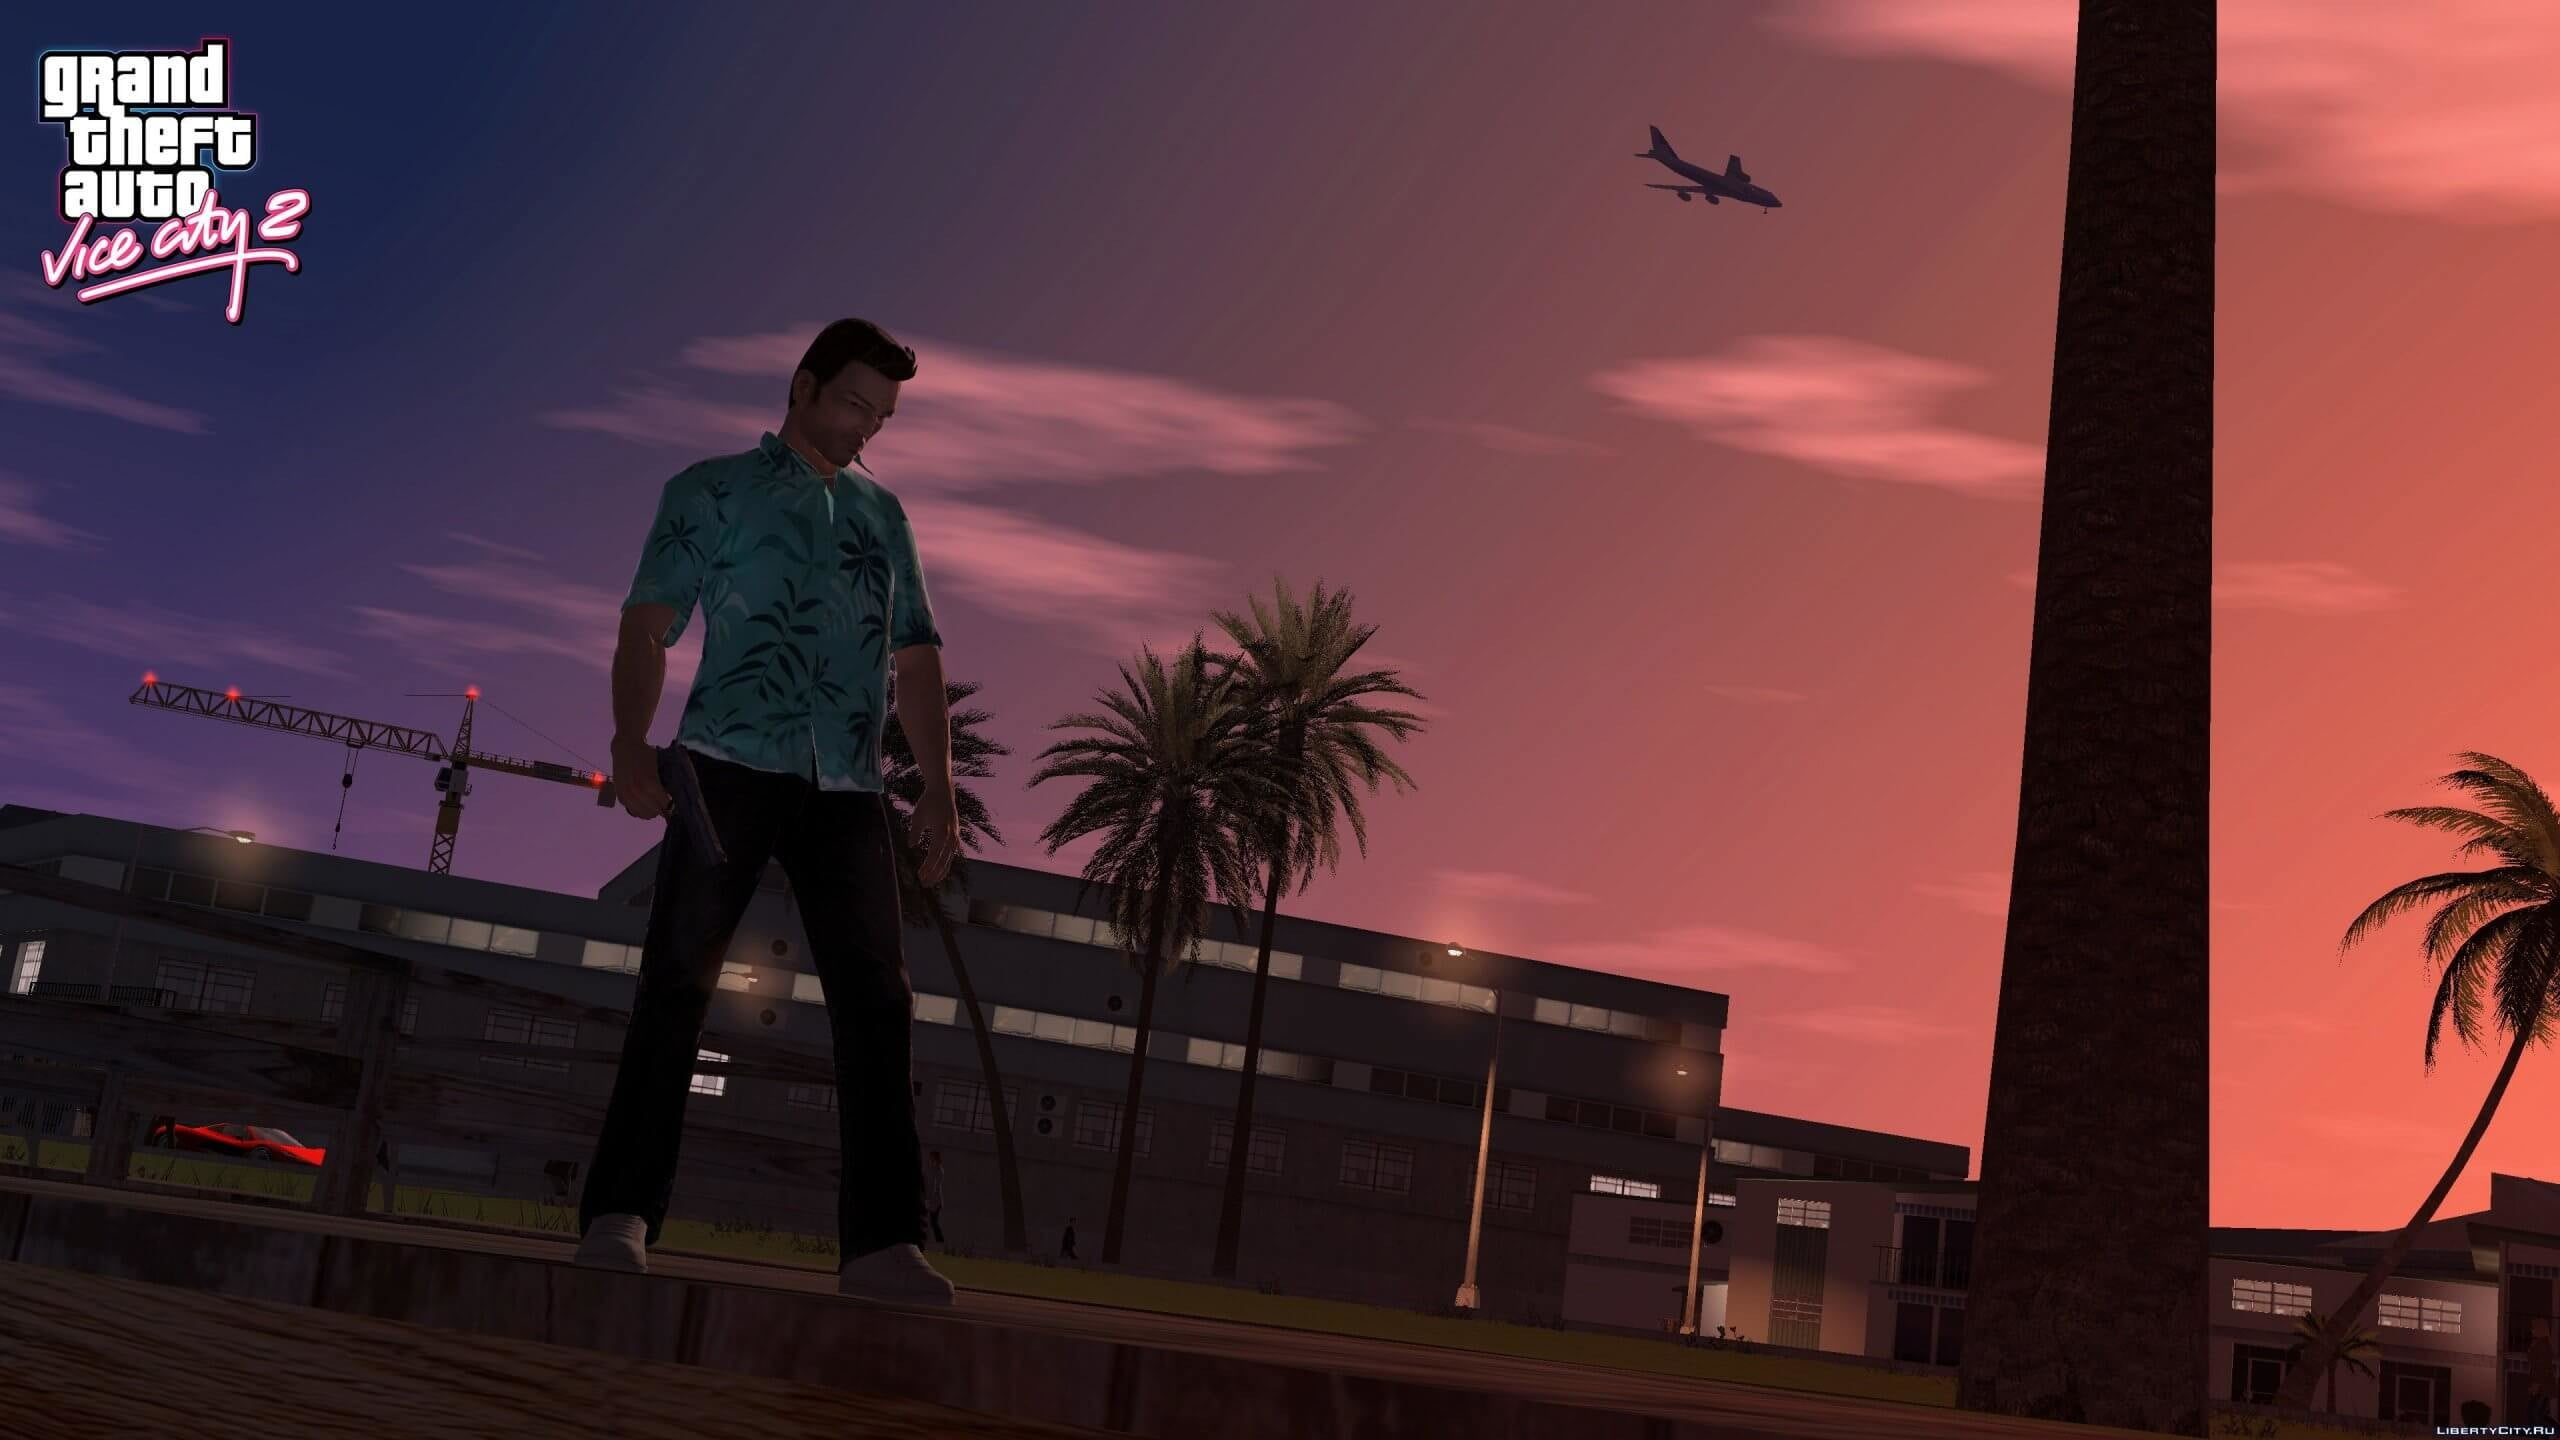 rermaster no oficial gta vice city 3grand theft auto 2 remaster 3 scaled